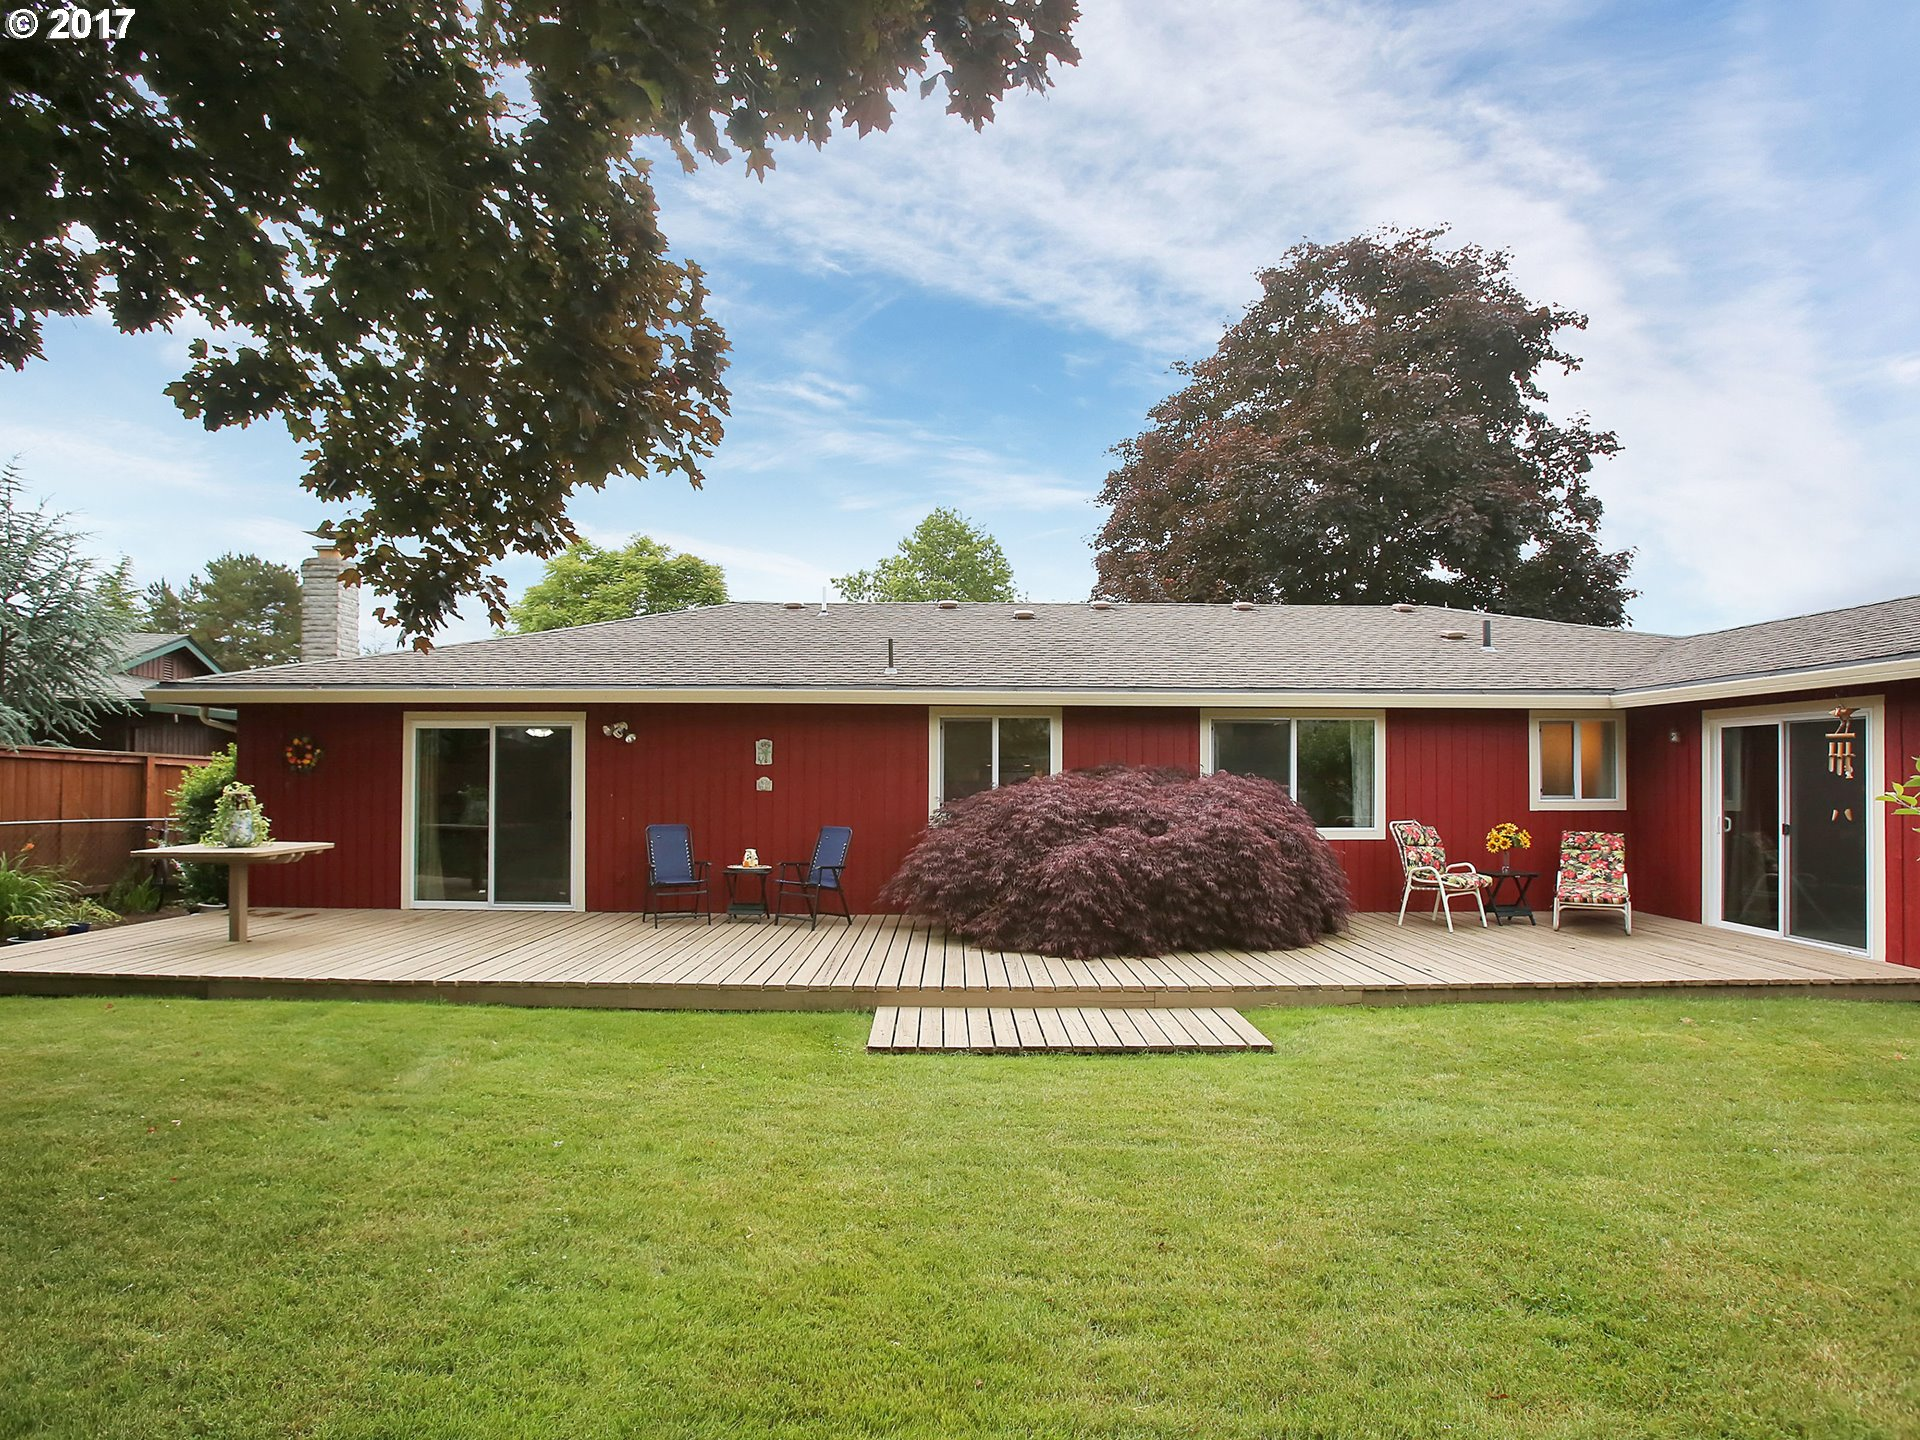 20575 SW WESTSIDE ST Aloha, OR 97078 - MLS #: 17502832